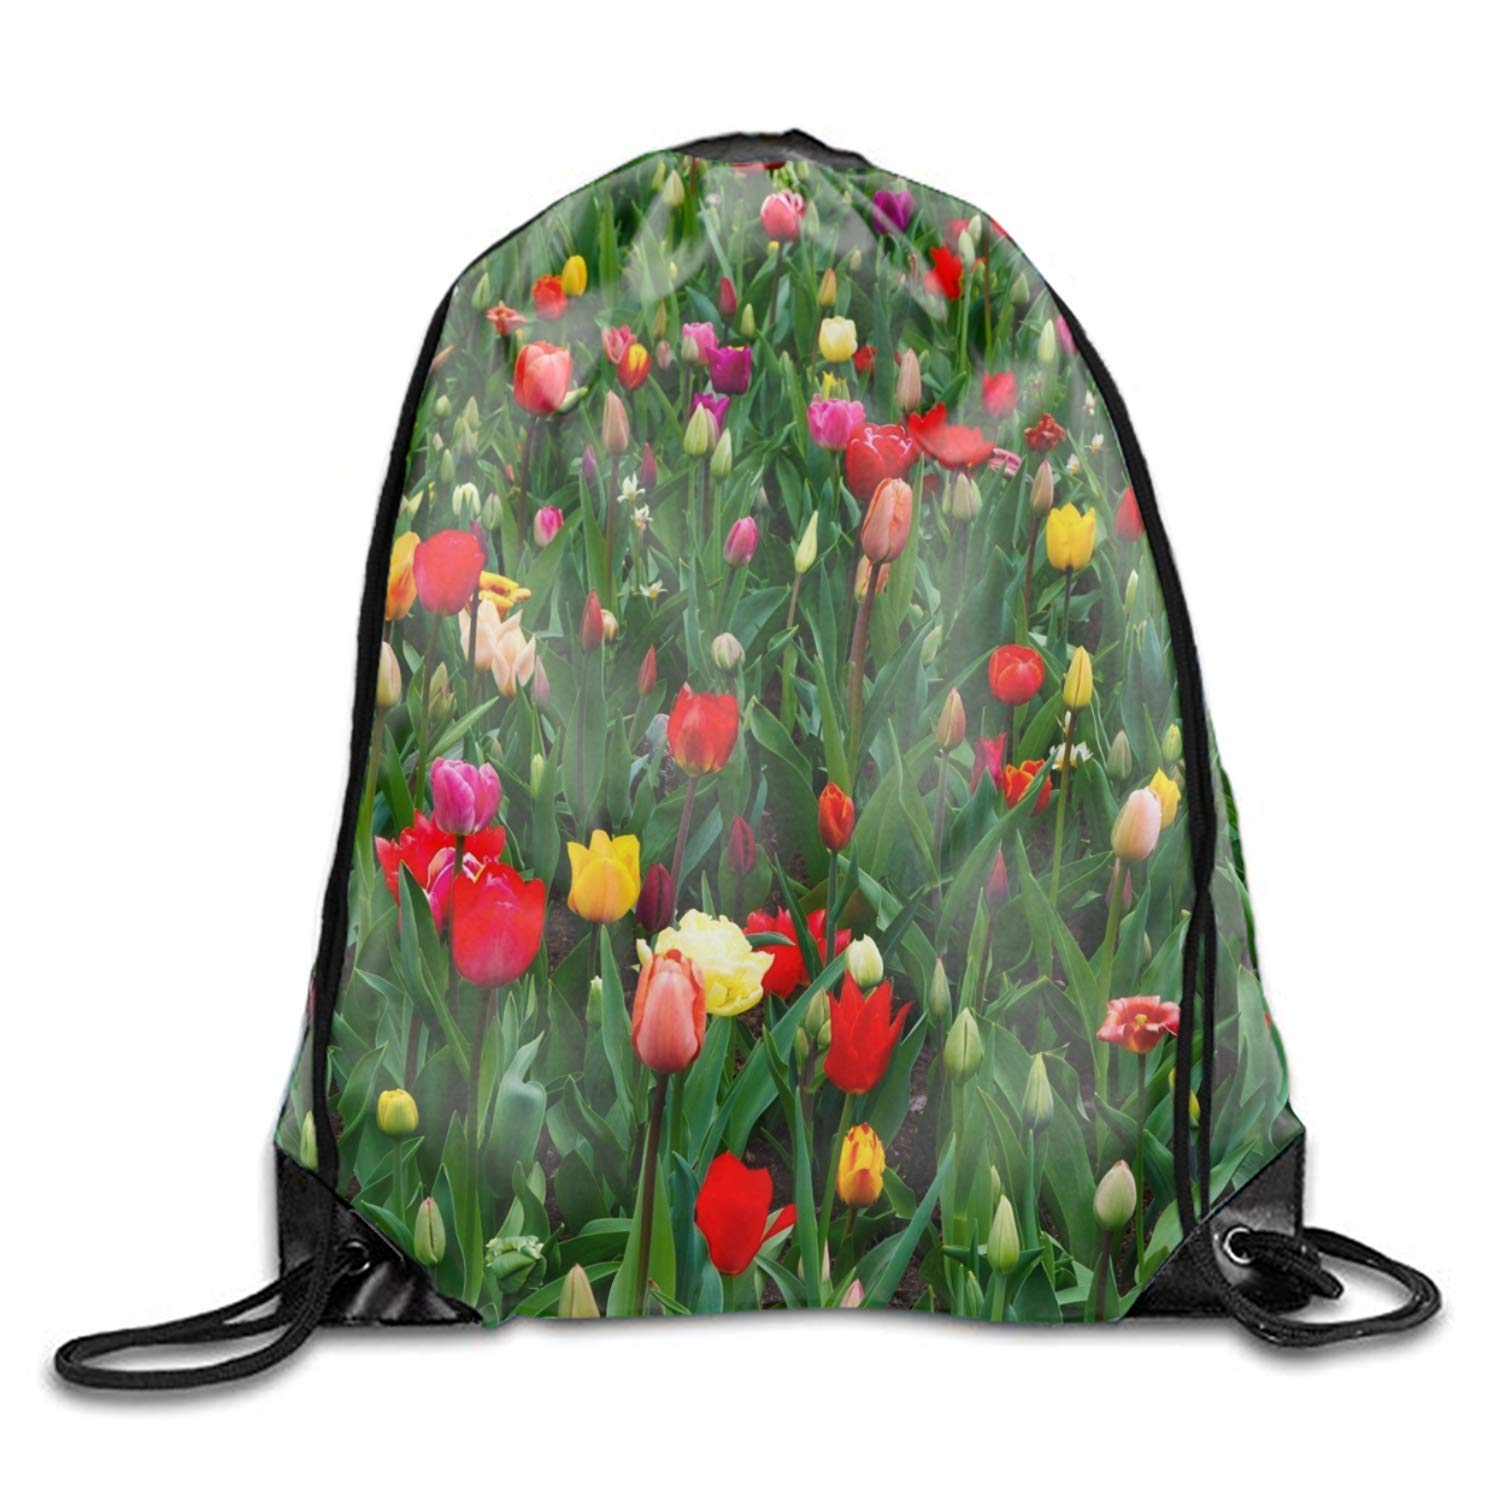 gthytjhv Garden of Tulips Drawstring Backpack Sport Bags Cinch Tote Bags for Traveling and Storage Garden of tulips10 Lightweight Unique 16.9x14.2: ...